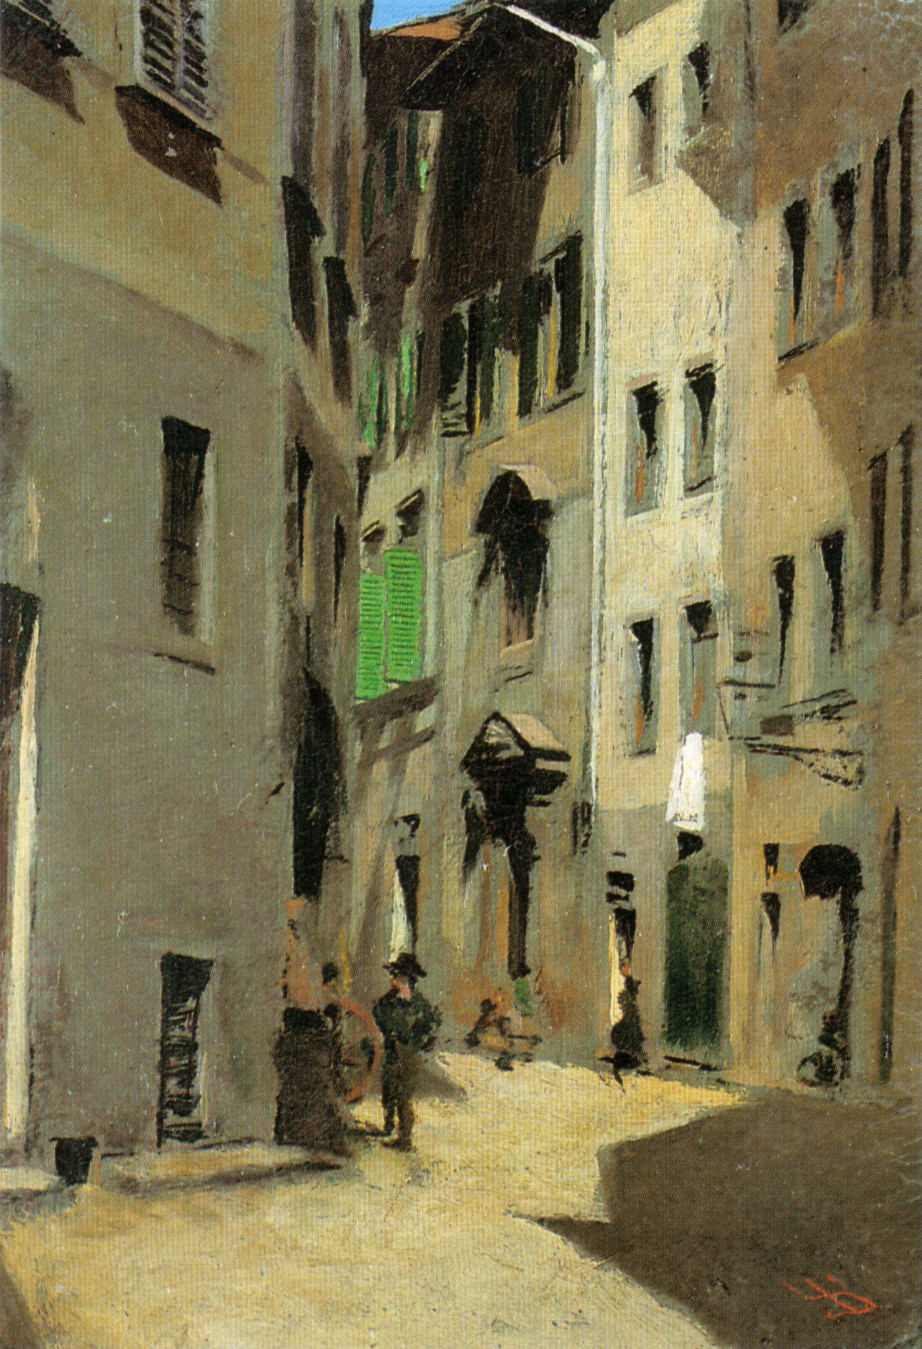 Telemaco Signorini, Via Torta in Florence (c 1870), oil on canvas, 16.6 x 11.3 cm, Location unknown. Wikimedia Commons.